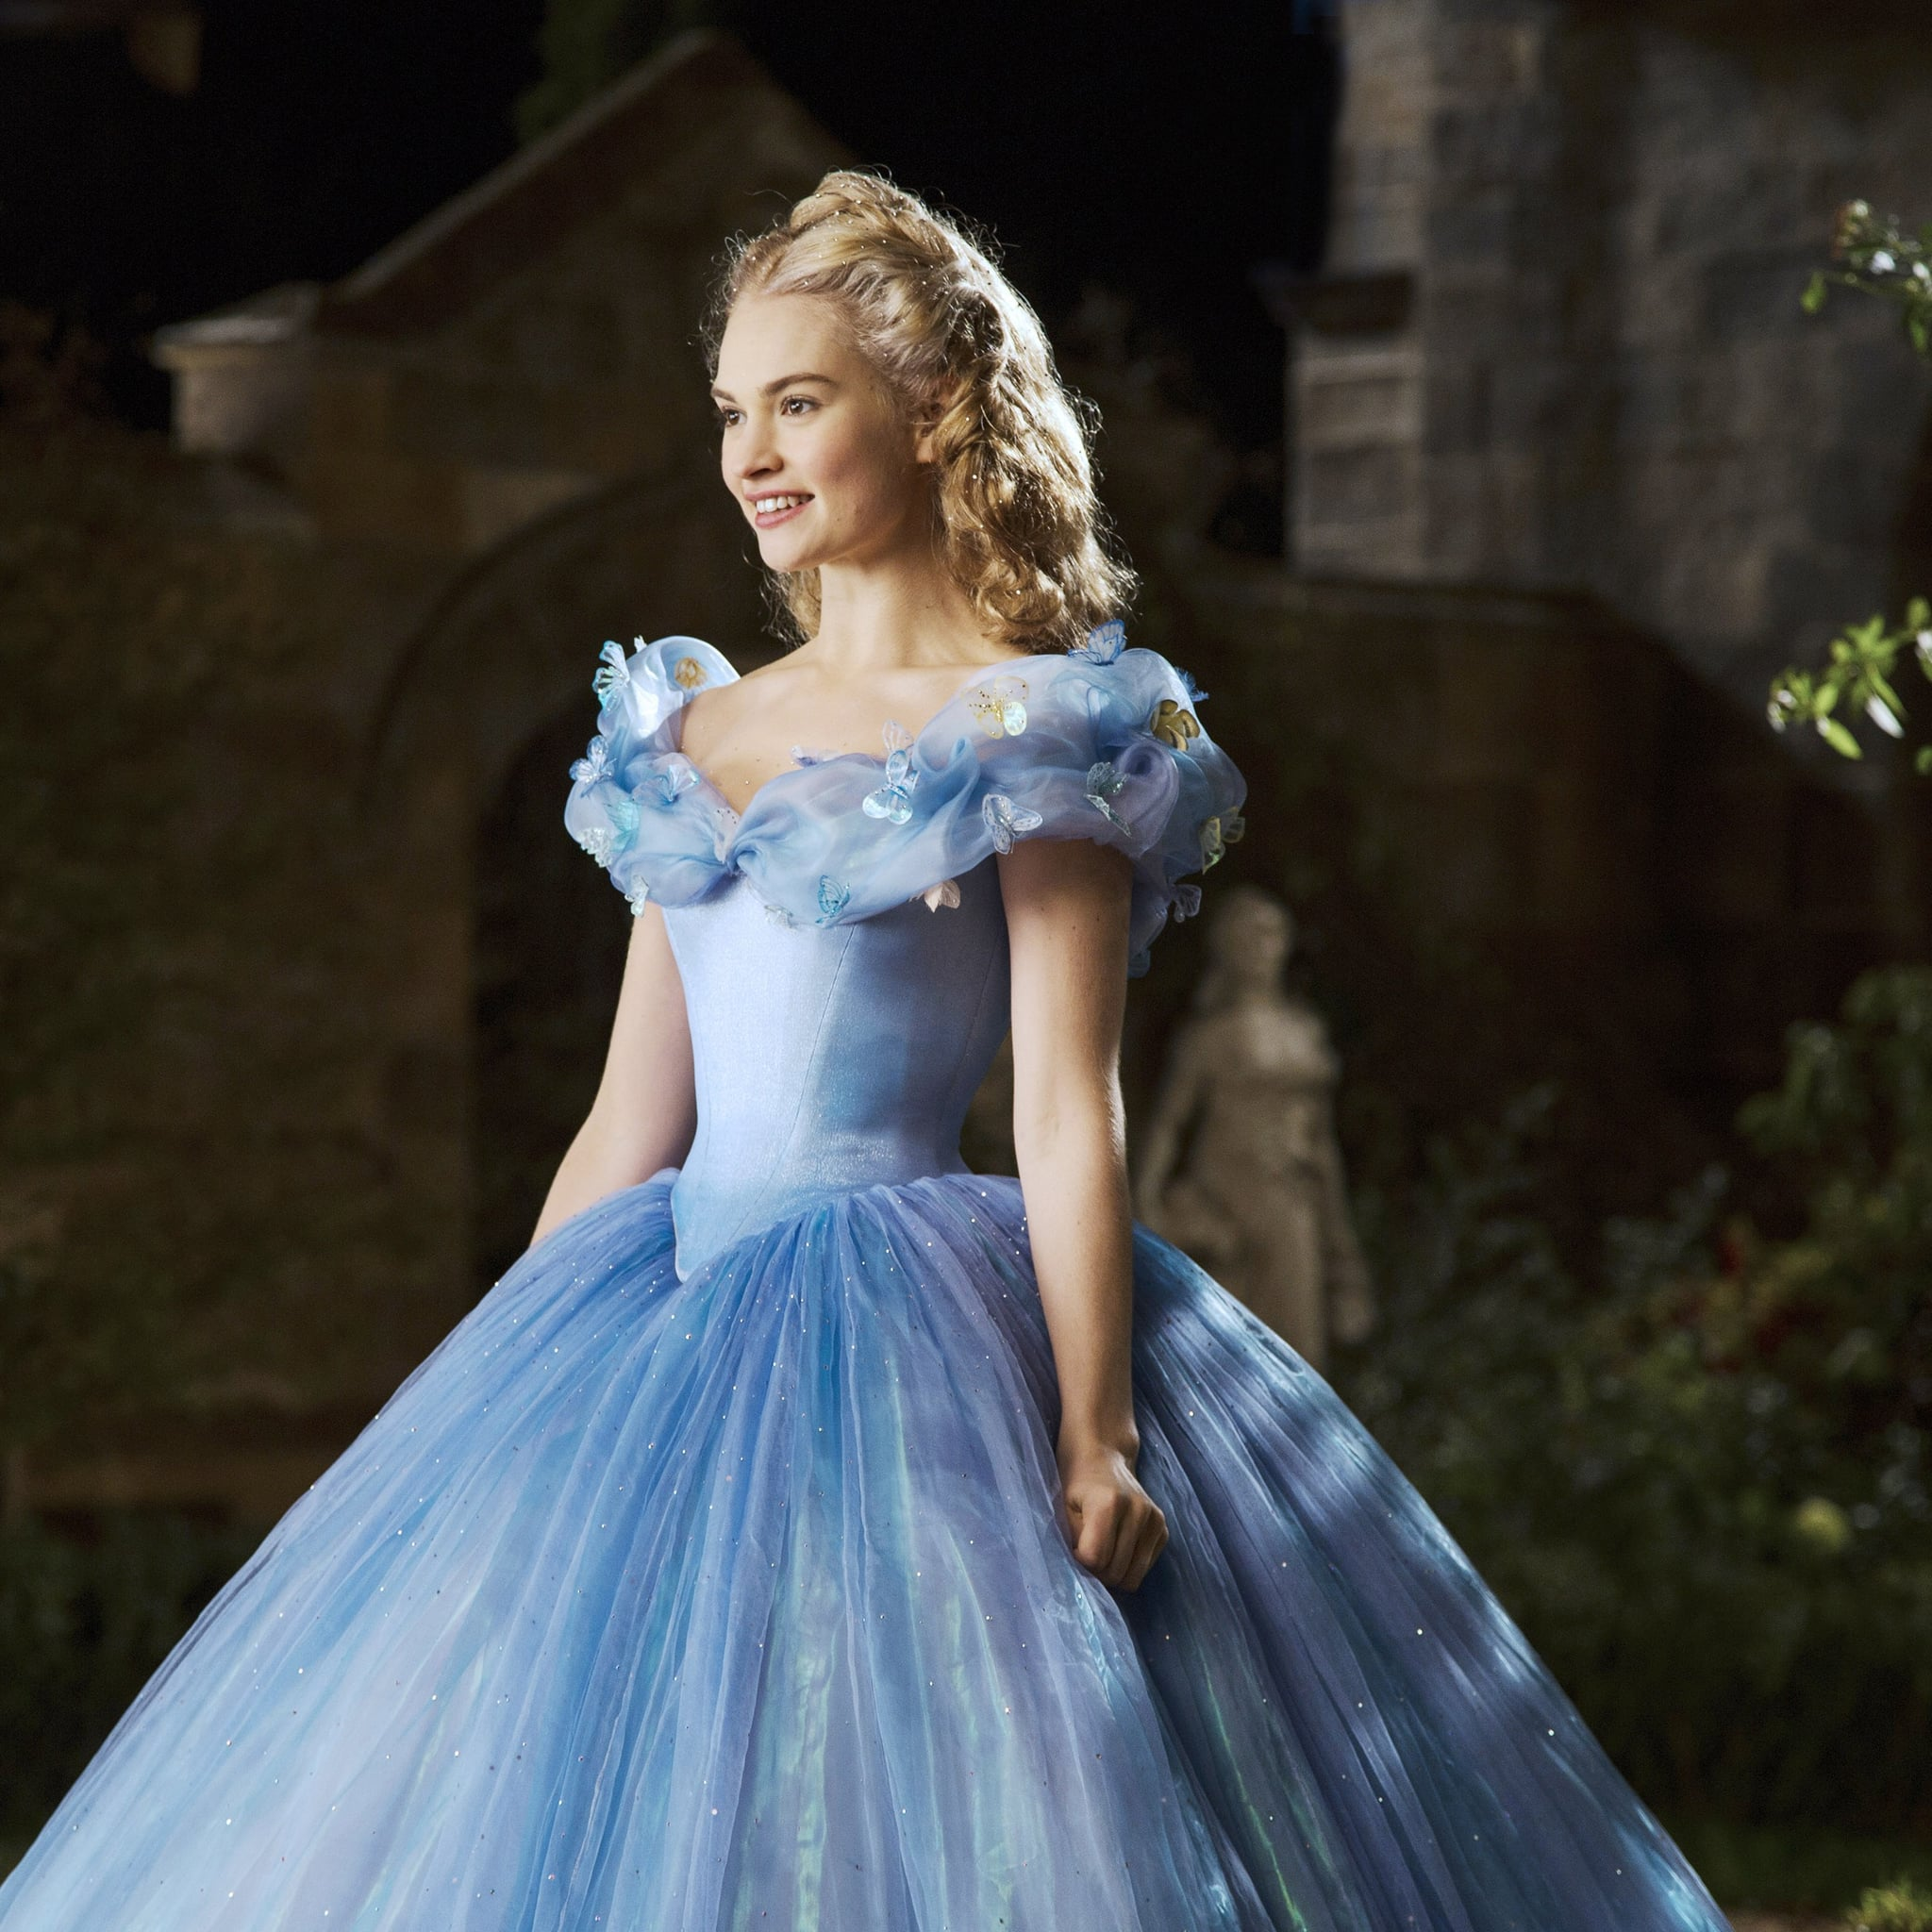 Lily James Talks About Finding Roles Different to Cinderella ...